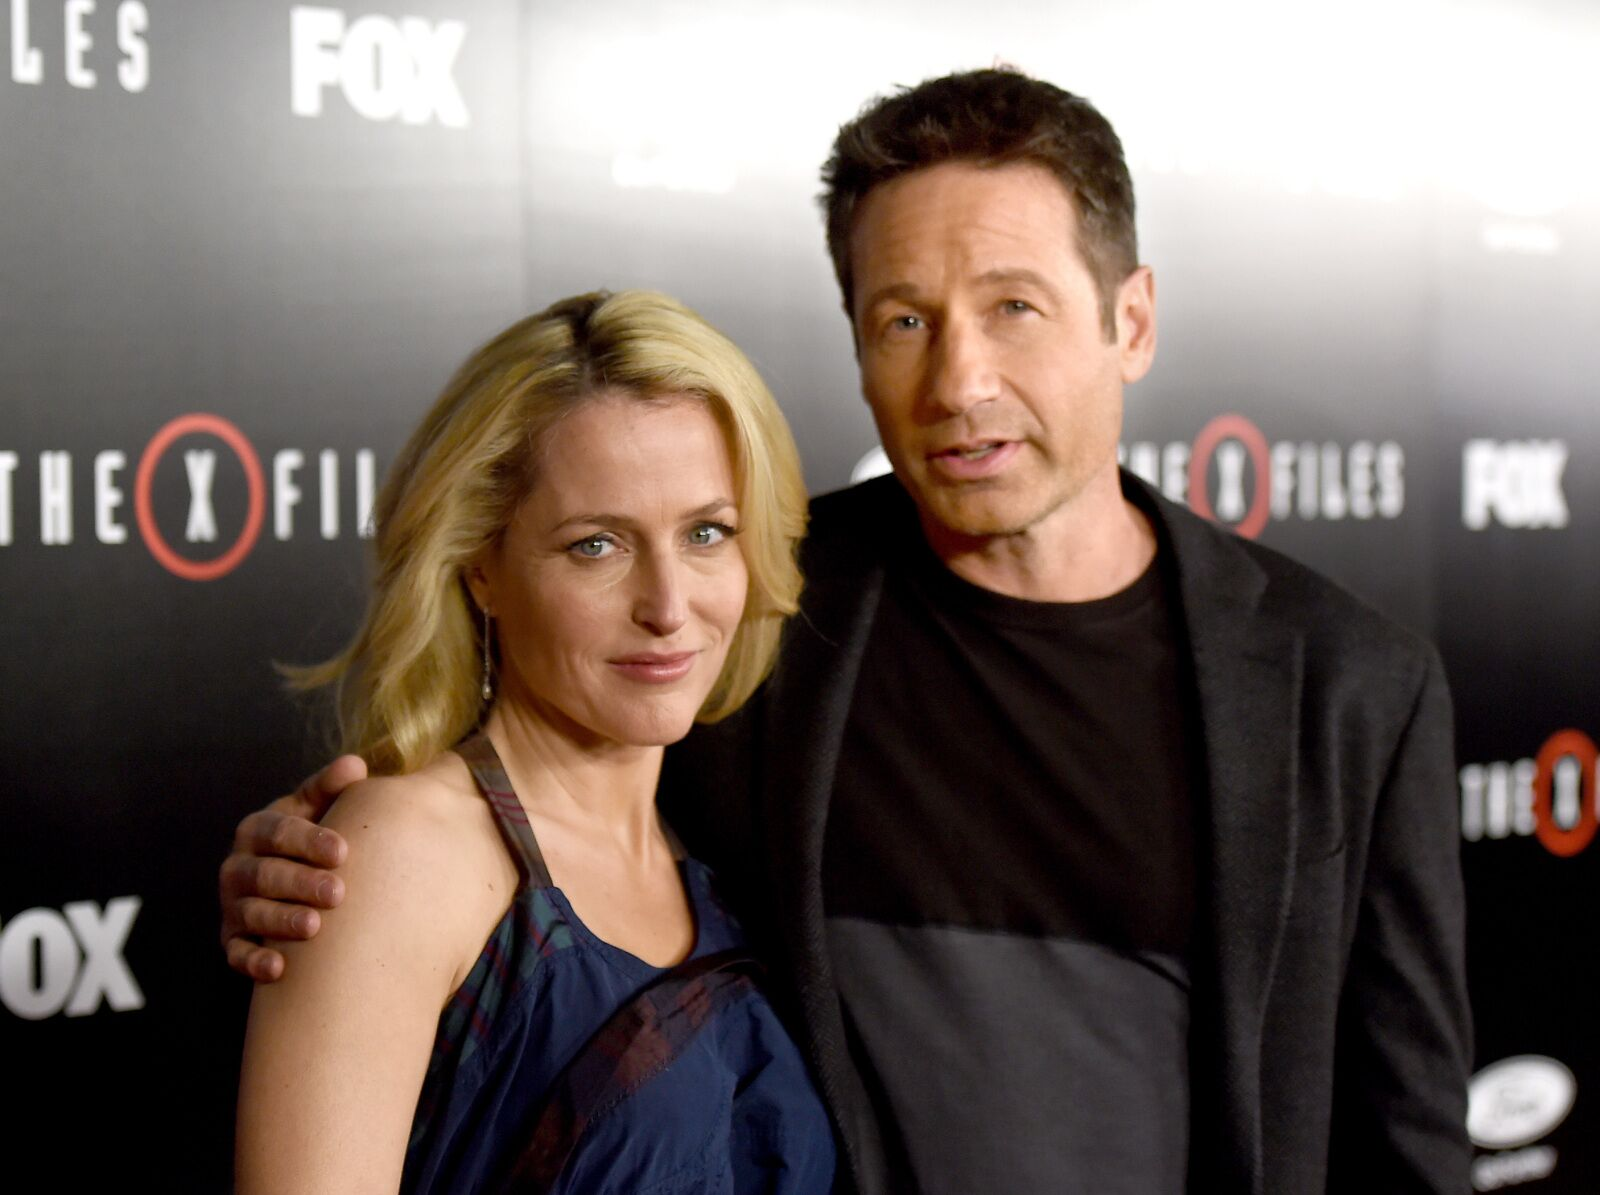 Gillian Anderson and David Duchovny celebrate 25 years of The X-Files at Wizard World Chicago